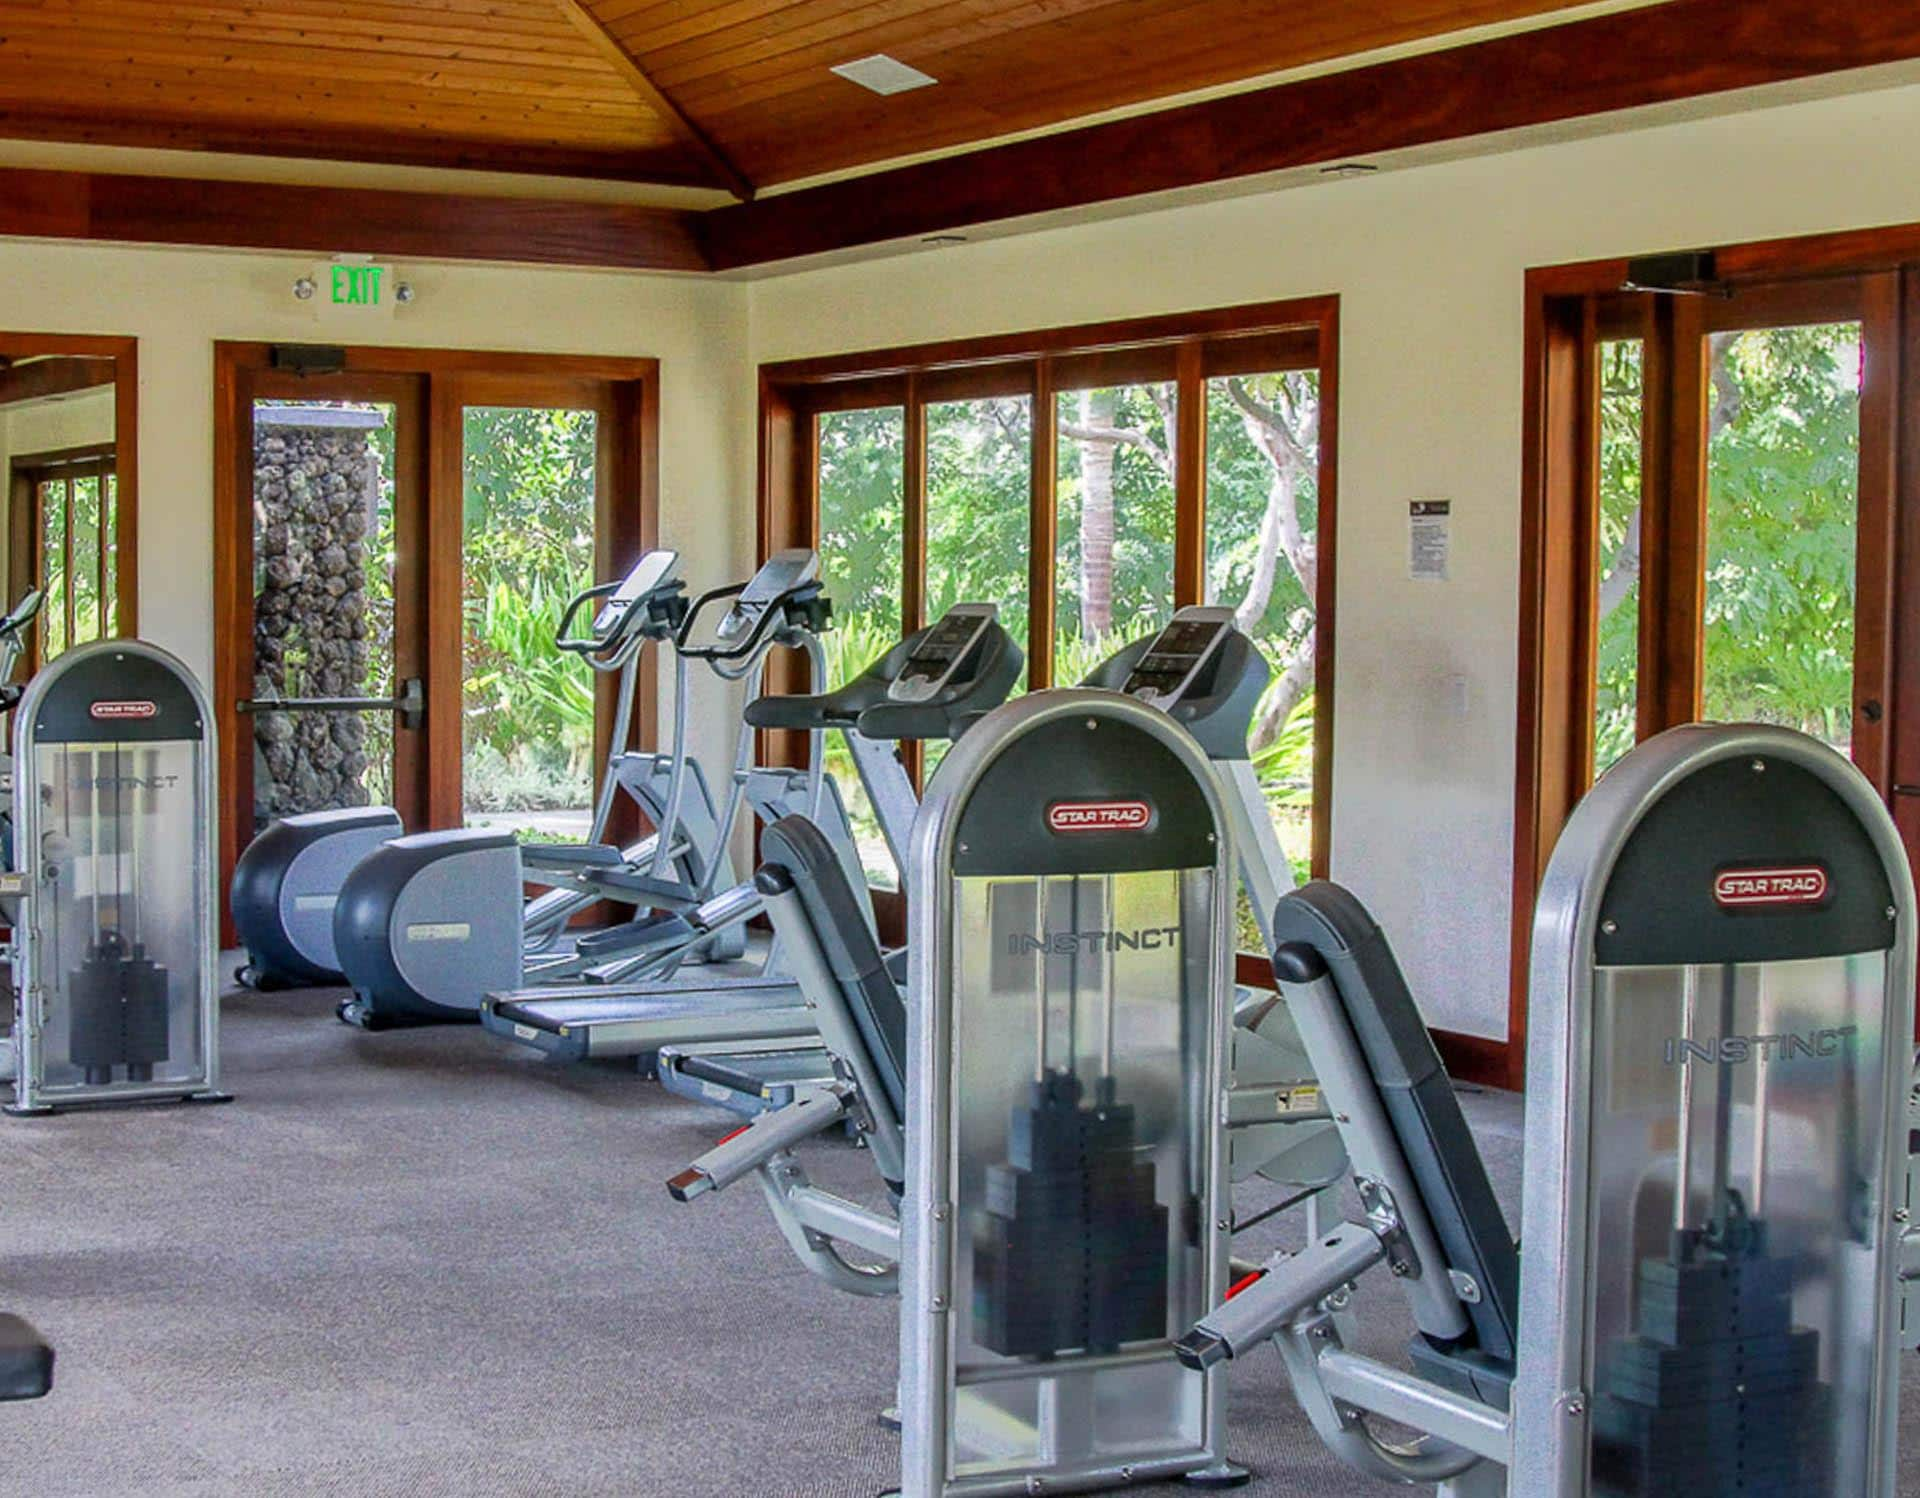 Large Fitness Center overlooking Pools and Gardens